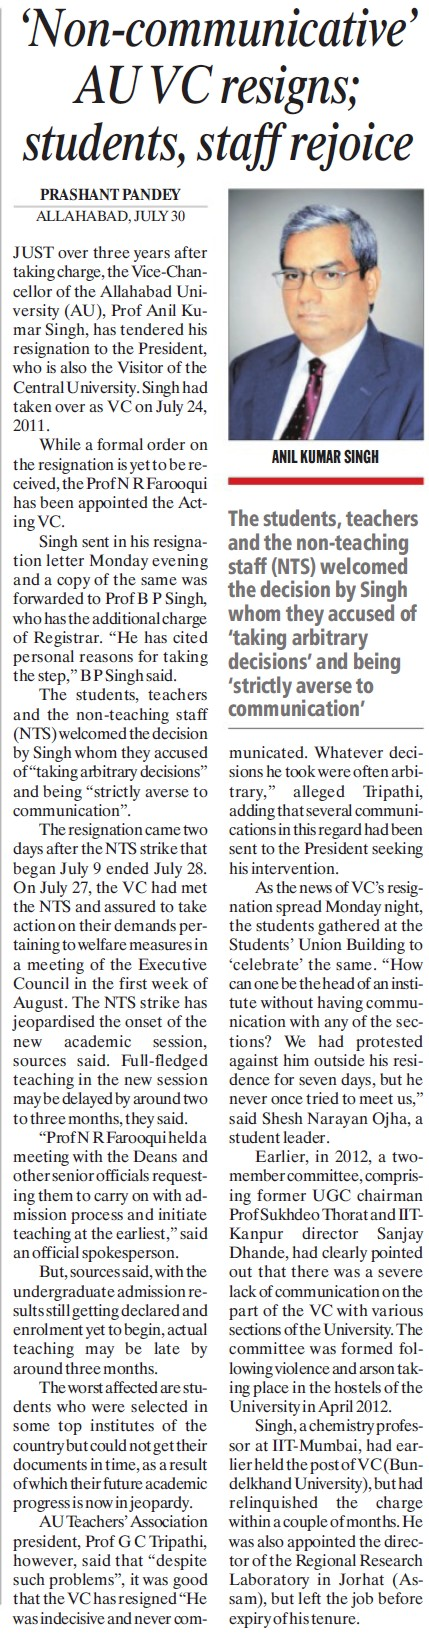 Non communicative AU VC resigns (University of Allahabad)